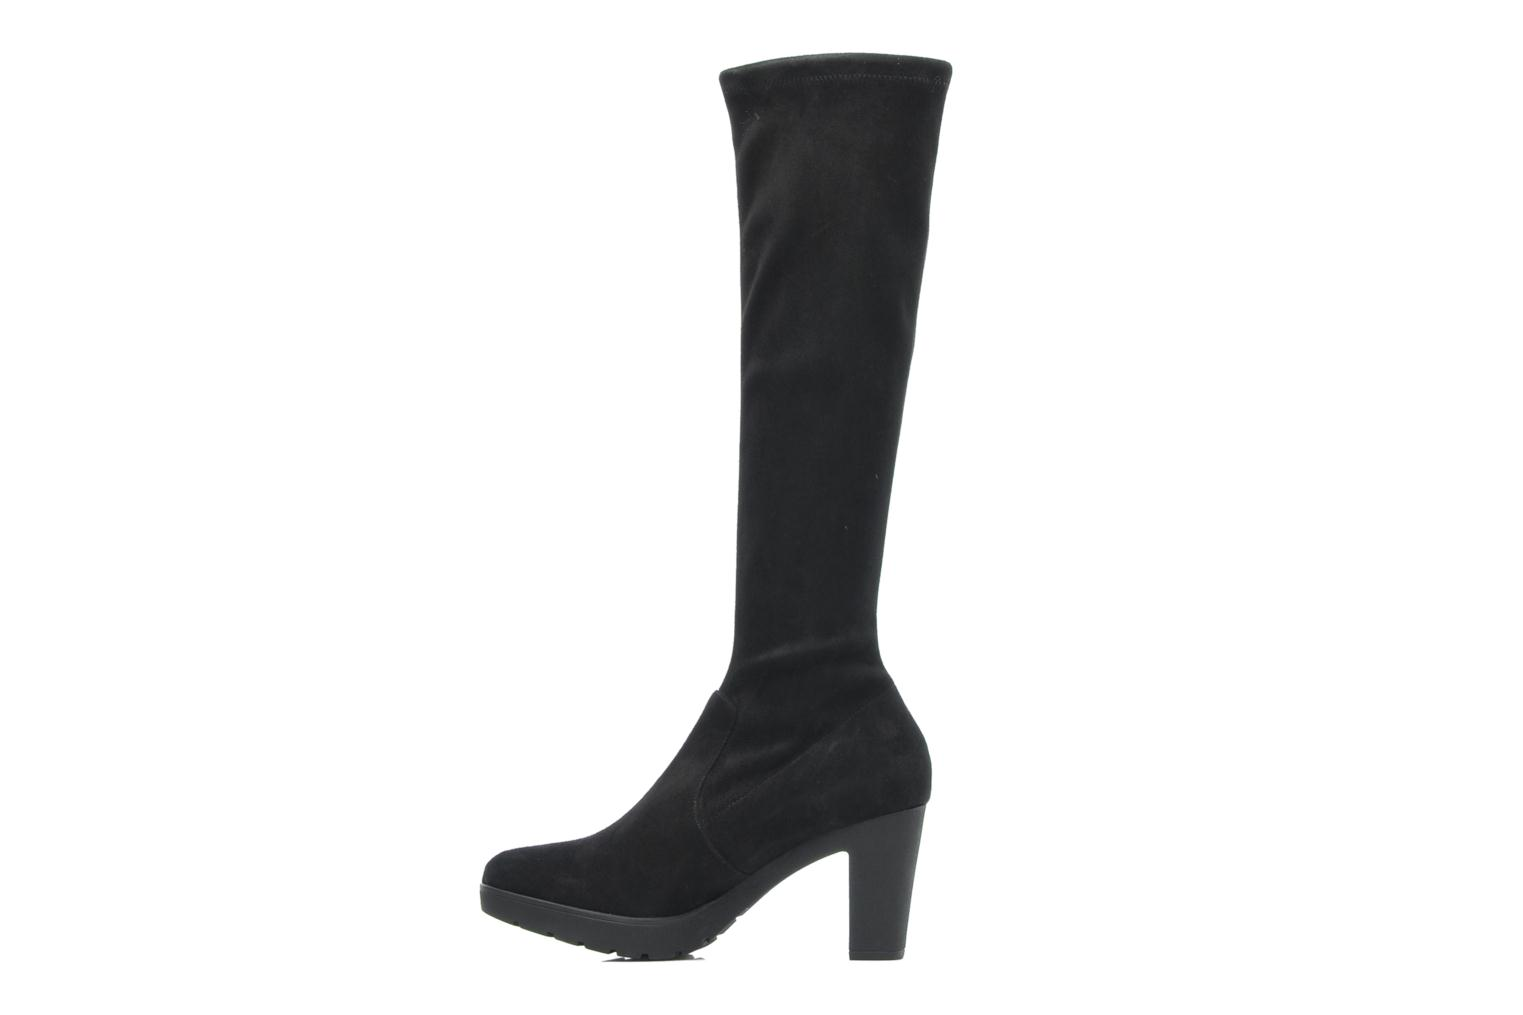 MINKA BLACK STRETCH SUEDE